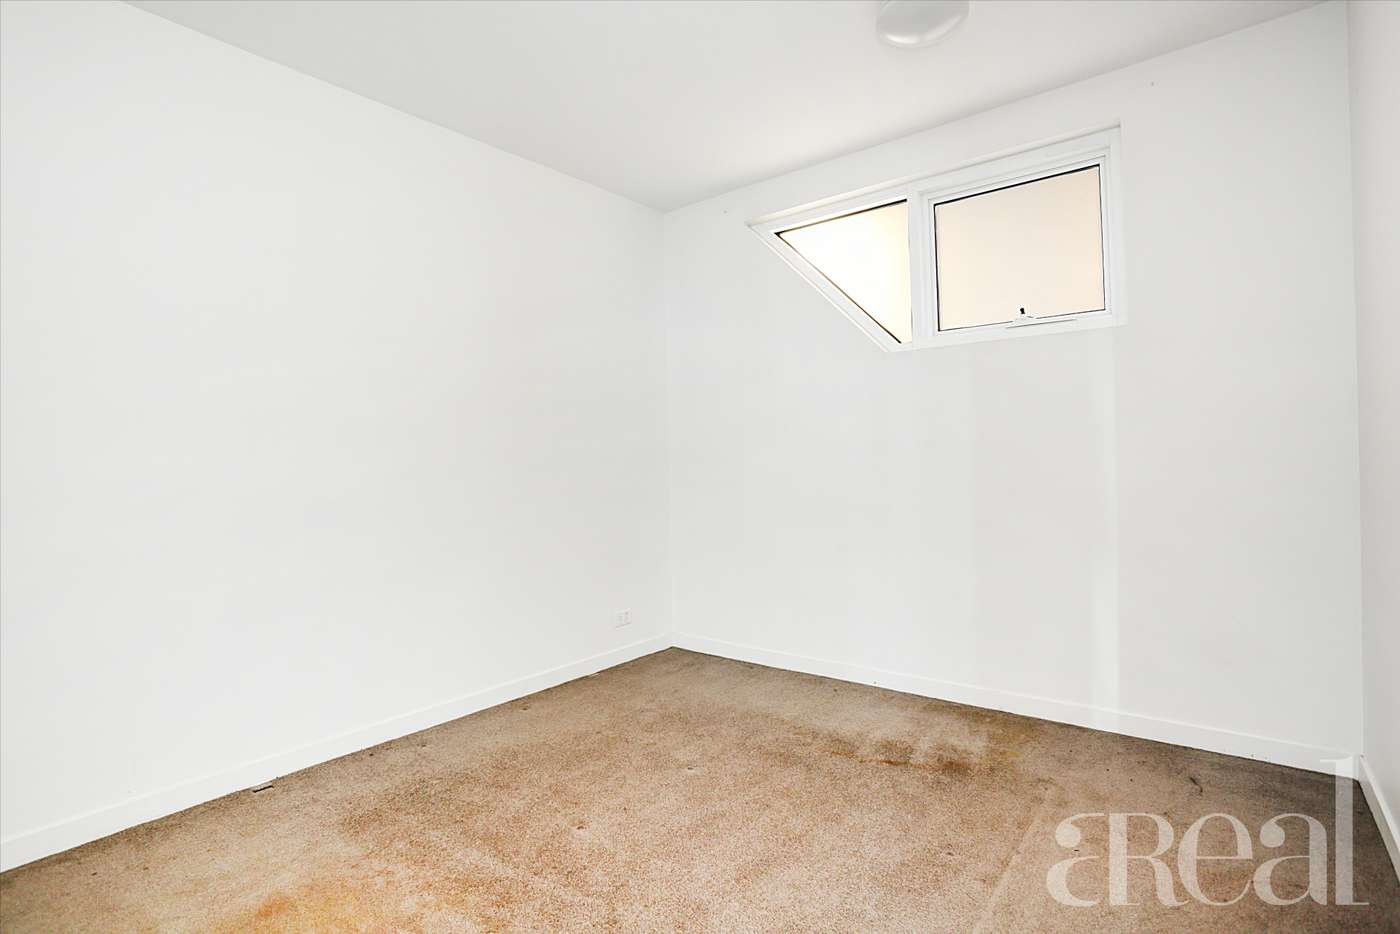 Seventh view of Homely apartment listing, 1104/55 Merchant Street, Docklands VIC 3008